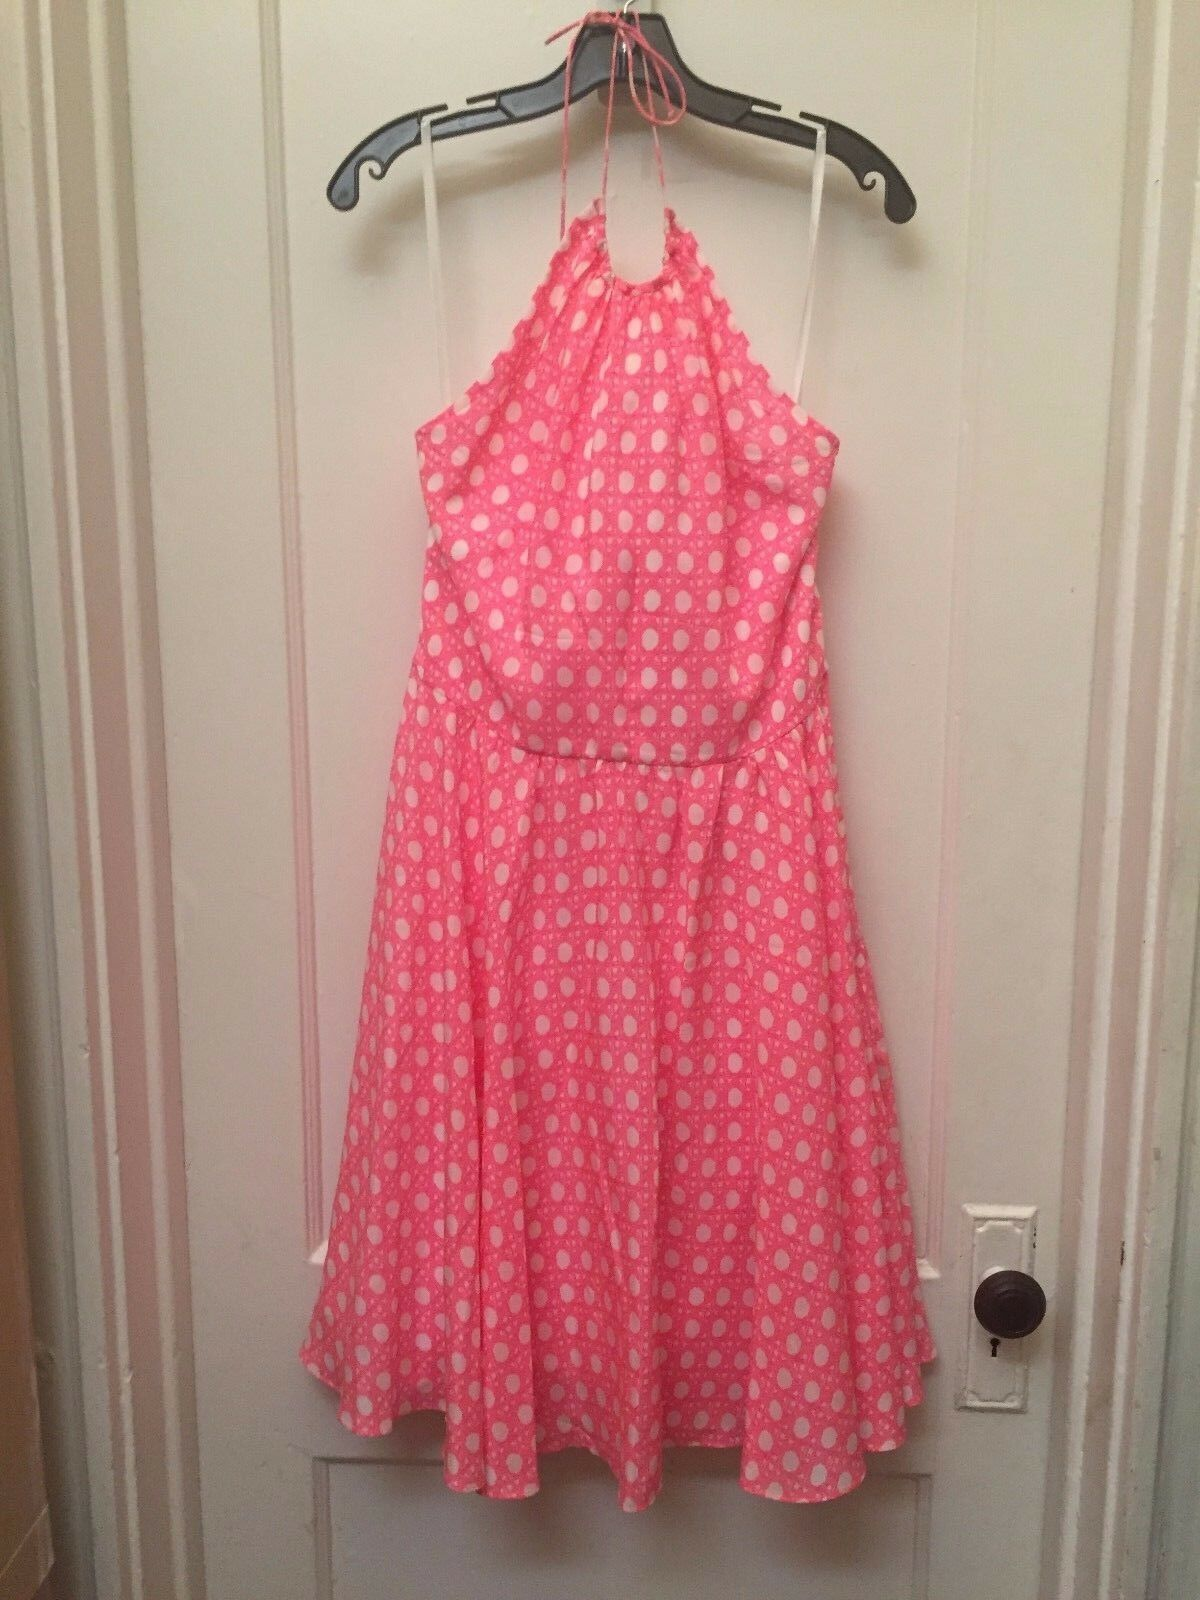 VINEYARD VINES SILK HALTER DRESS CANING PRINT NEW SIZE 10  228.00